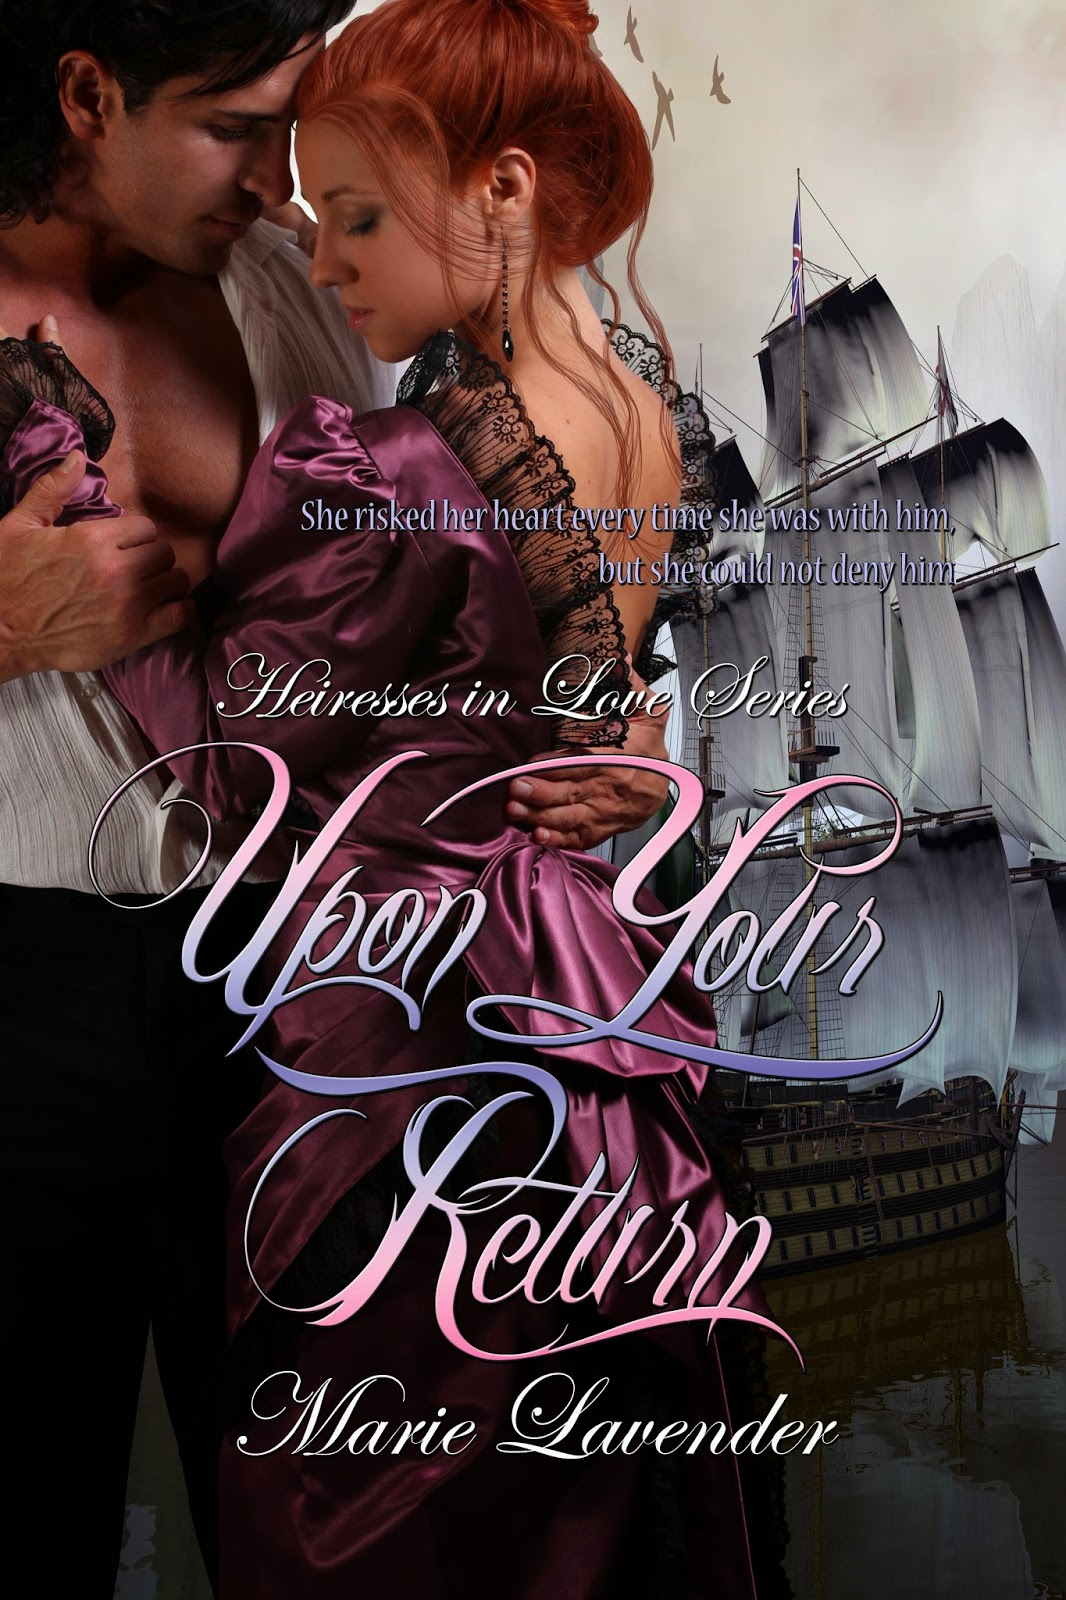 http://www.amazon.com/Upon-Your-Return-Marie-Lavender/dp/1484978099/ref=tmm_pap_title_0?ie=UTF8&qid=1392423309&sr=8-1